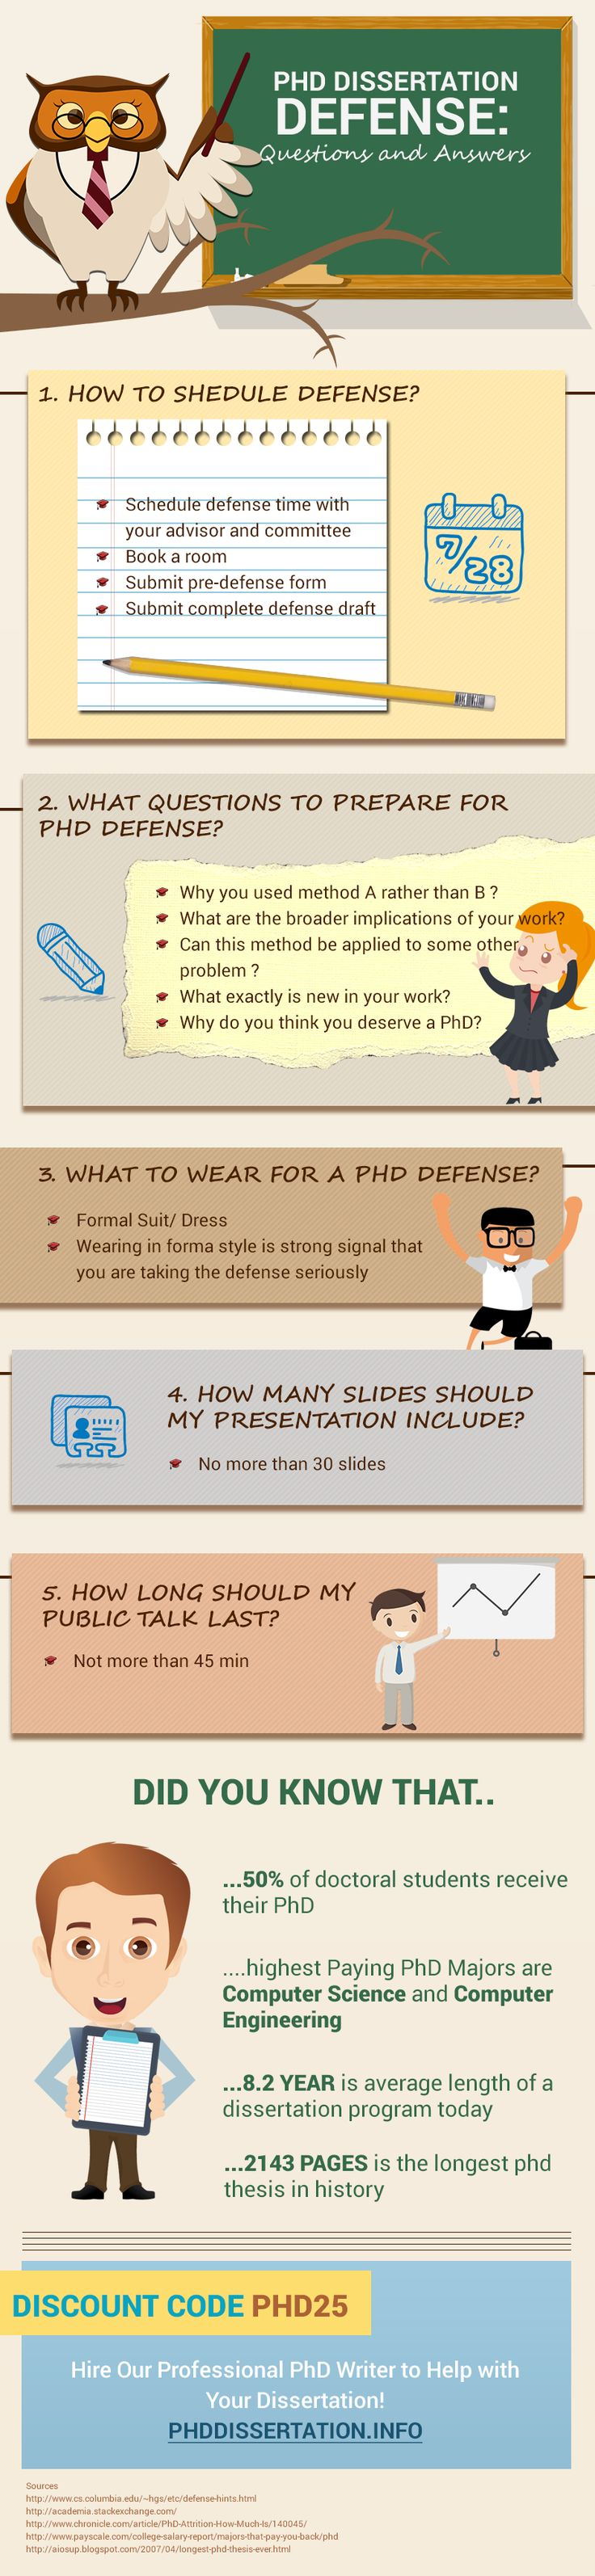 https://www.phddissertation.info/phd-dissertation-defense-questions-and-answers/ Check out this PhD dissertation defense tips to make sure that your PhD dissertation will be successful